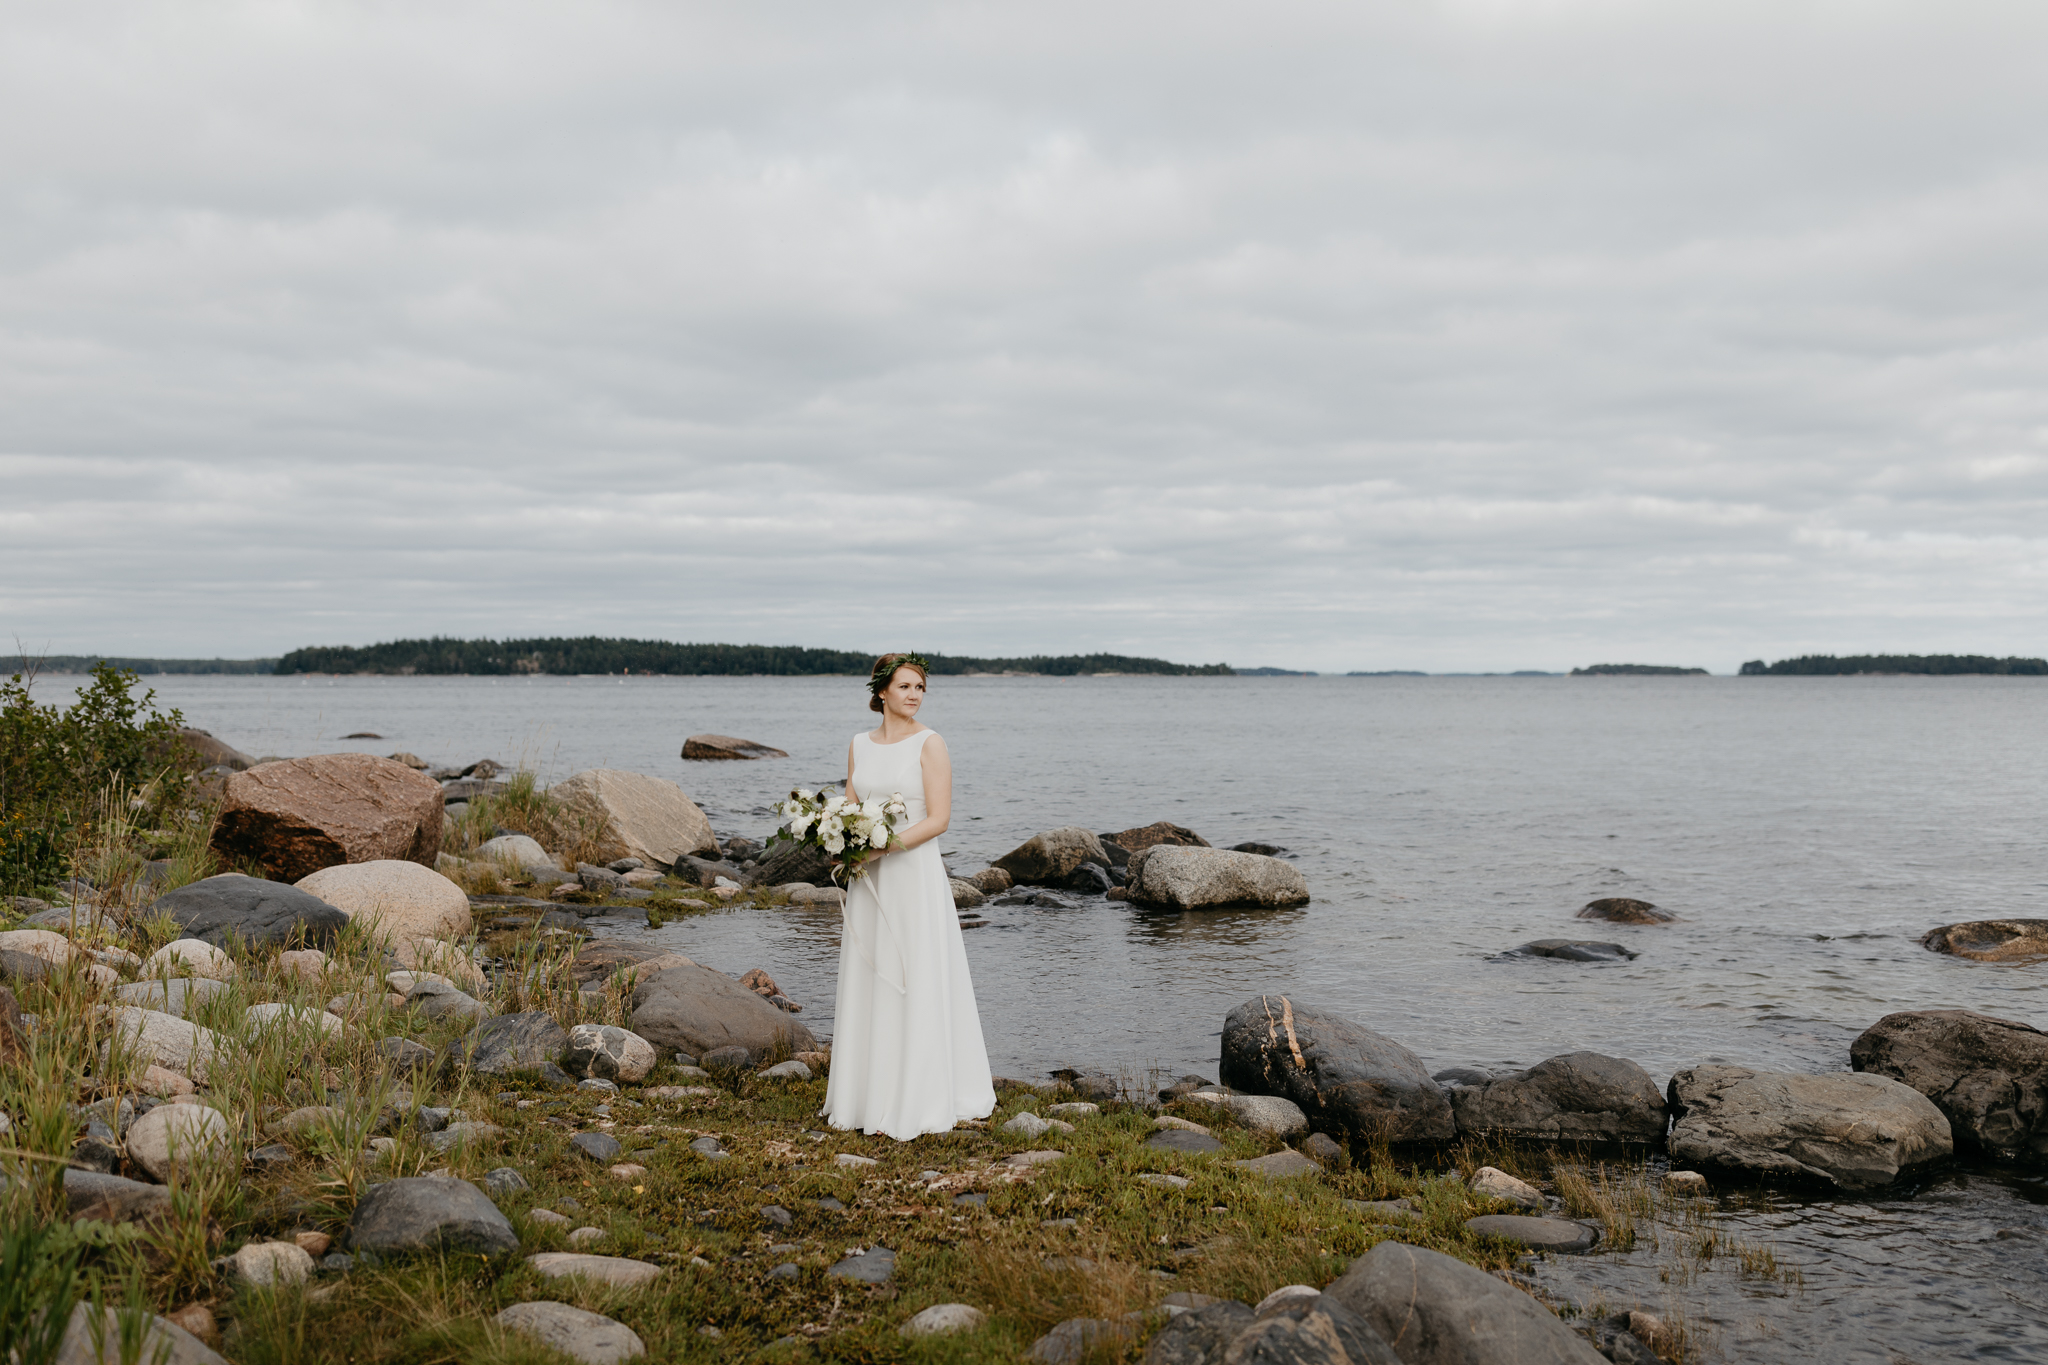 Vilhelmiina + Mark | Photo by Patrick Karkkolainen Wedding Photographer | Helsinki Wedding Photographer-157.jpg